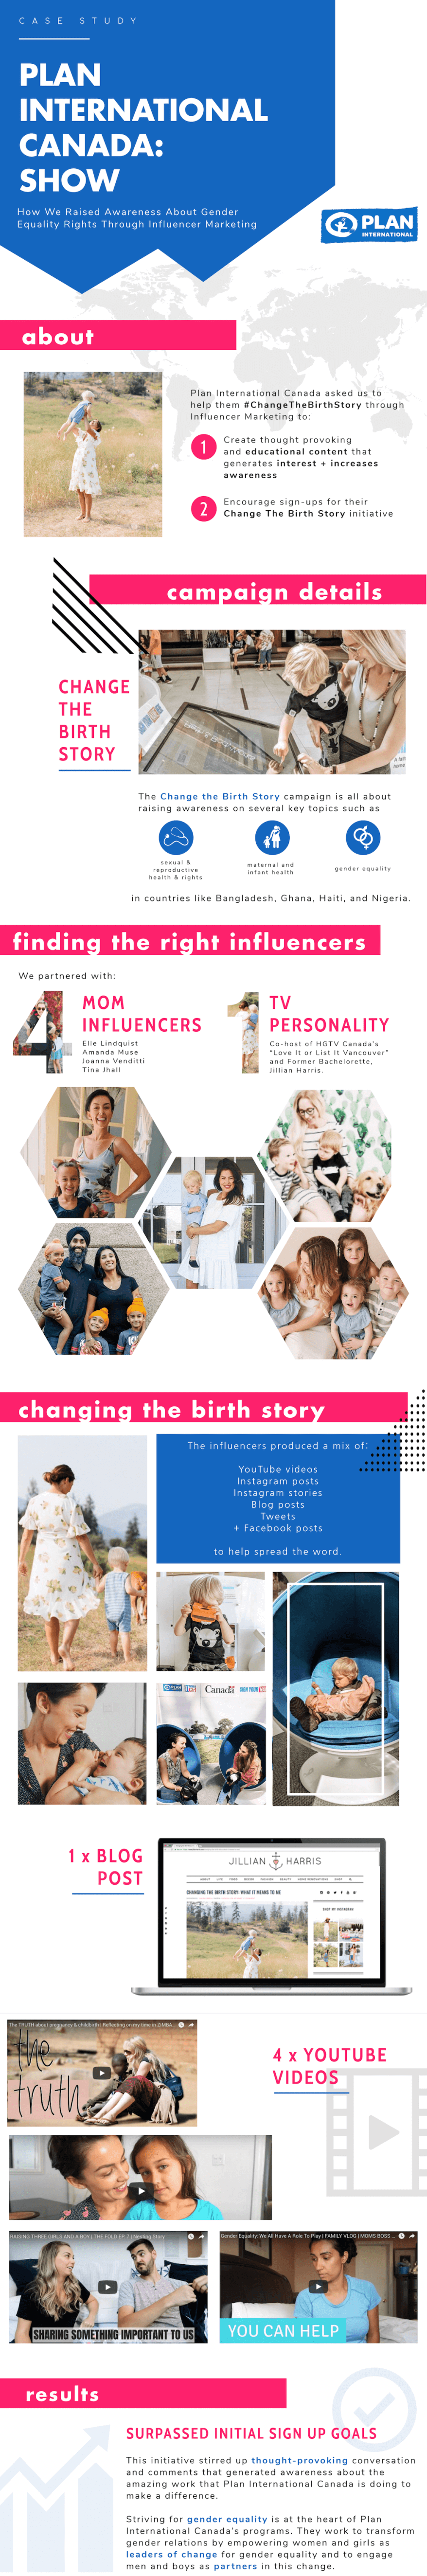 sign your name to the change the birth story campaign